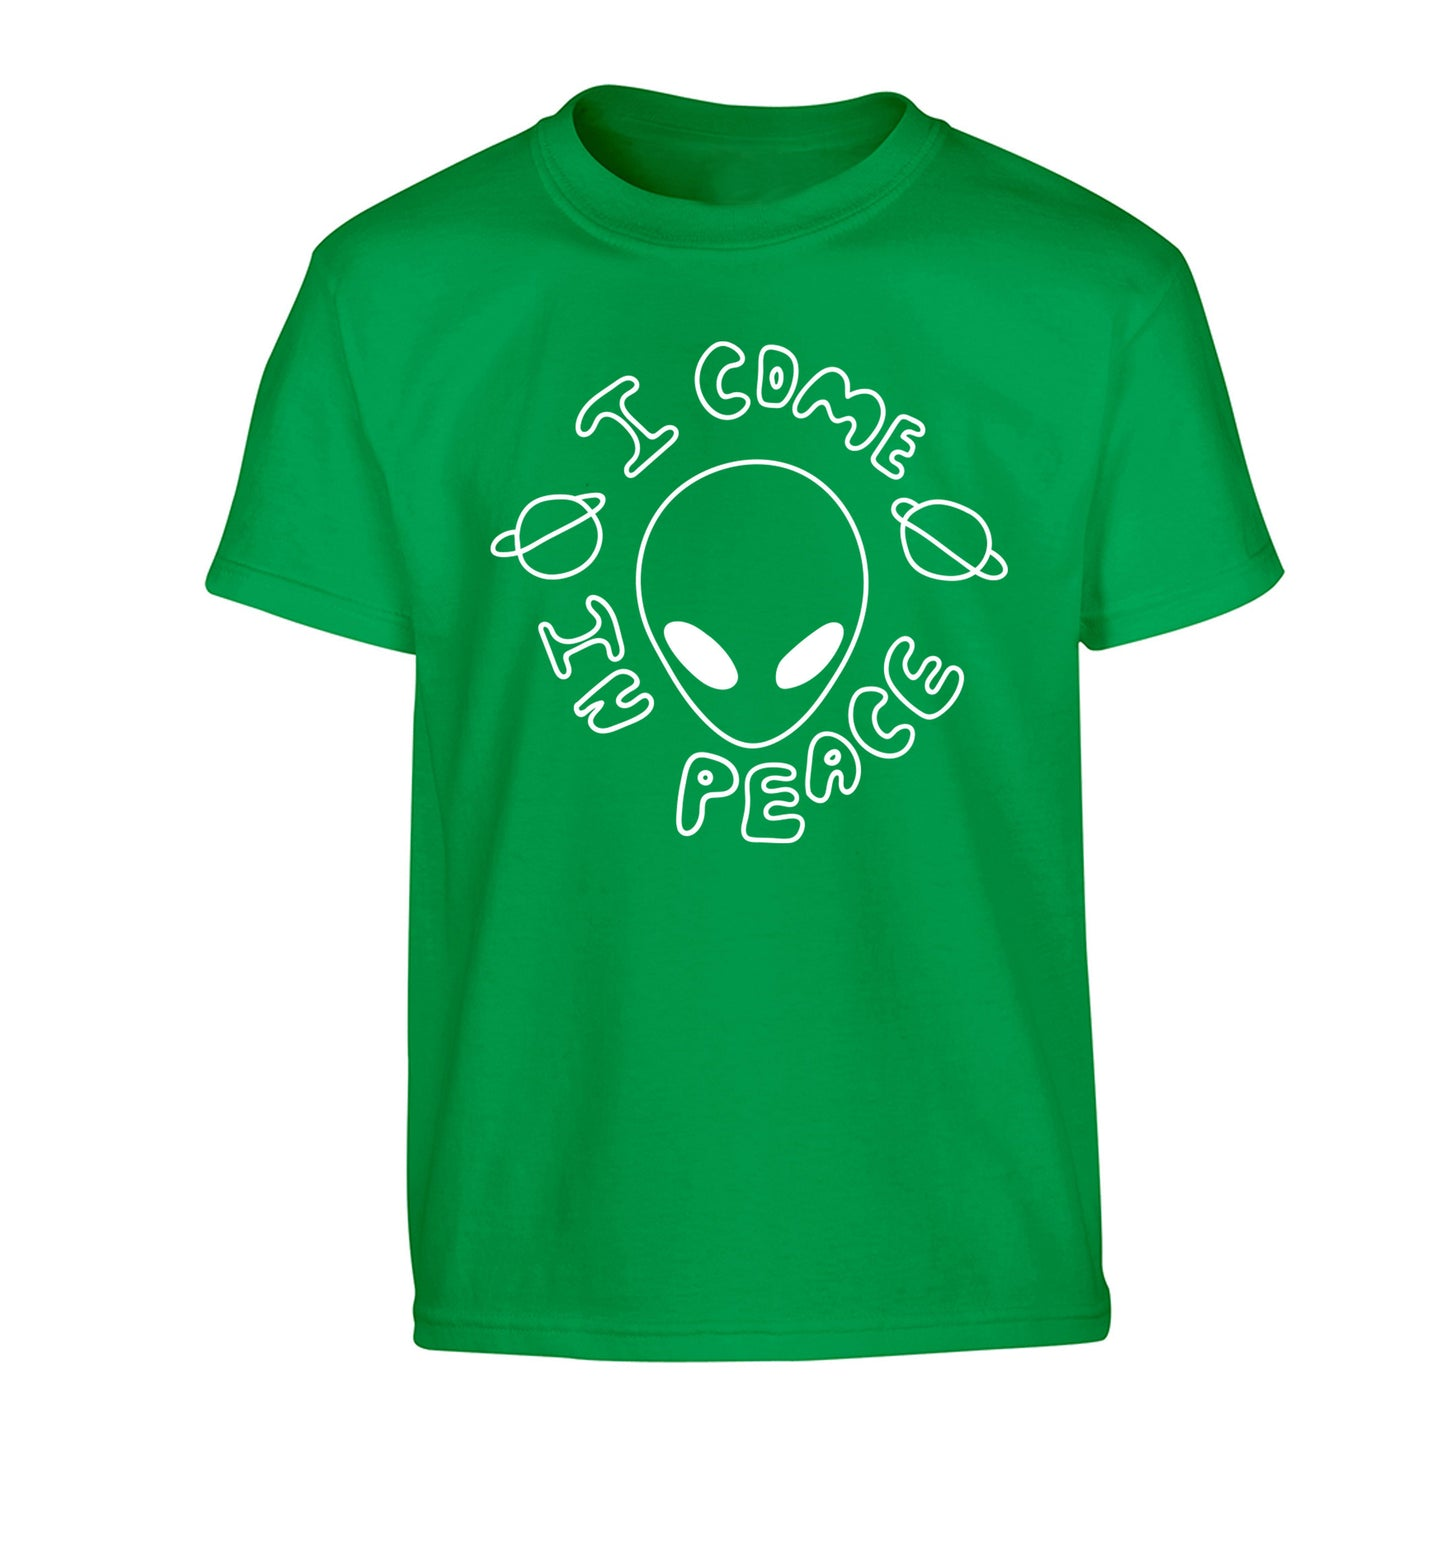 I come in peace Children's green Tshirt 12-14 Years